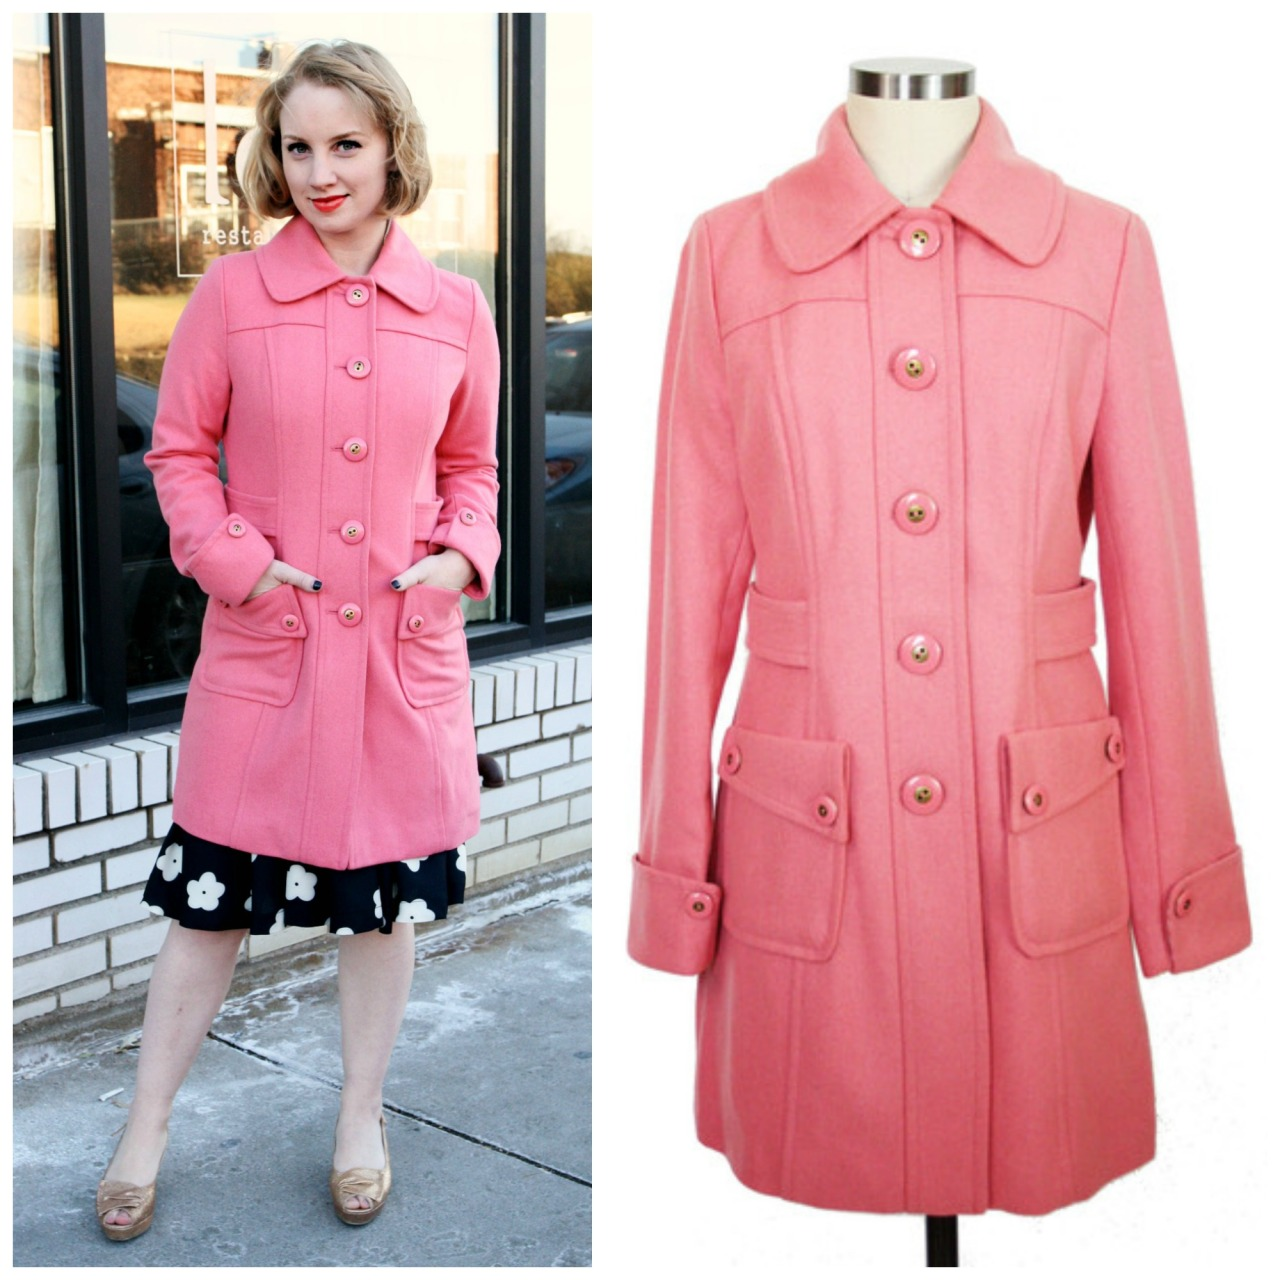 Here's our cofounder Meg today in our Pink Lady coat over our Strike a Posey skirt and Brook Heels! It's getting chilly outside and our wool-blend coat in this beautiful blush hue with soft satiny lining is just what the weatherman ordered. Coat: http://helloholiday.com/collections/allclothing/products/pink-lady-coatSkirt: http://helloholiday.com/collections/allclothing/products/strike-a-posey-skirtShoes: http://helloholiday.com/collections/shoes/products/brook-heels